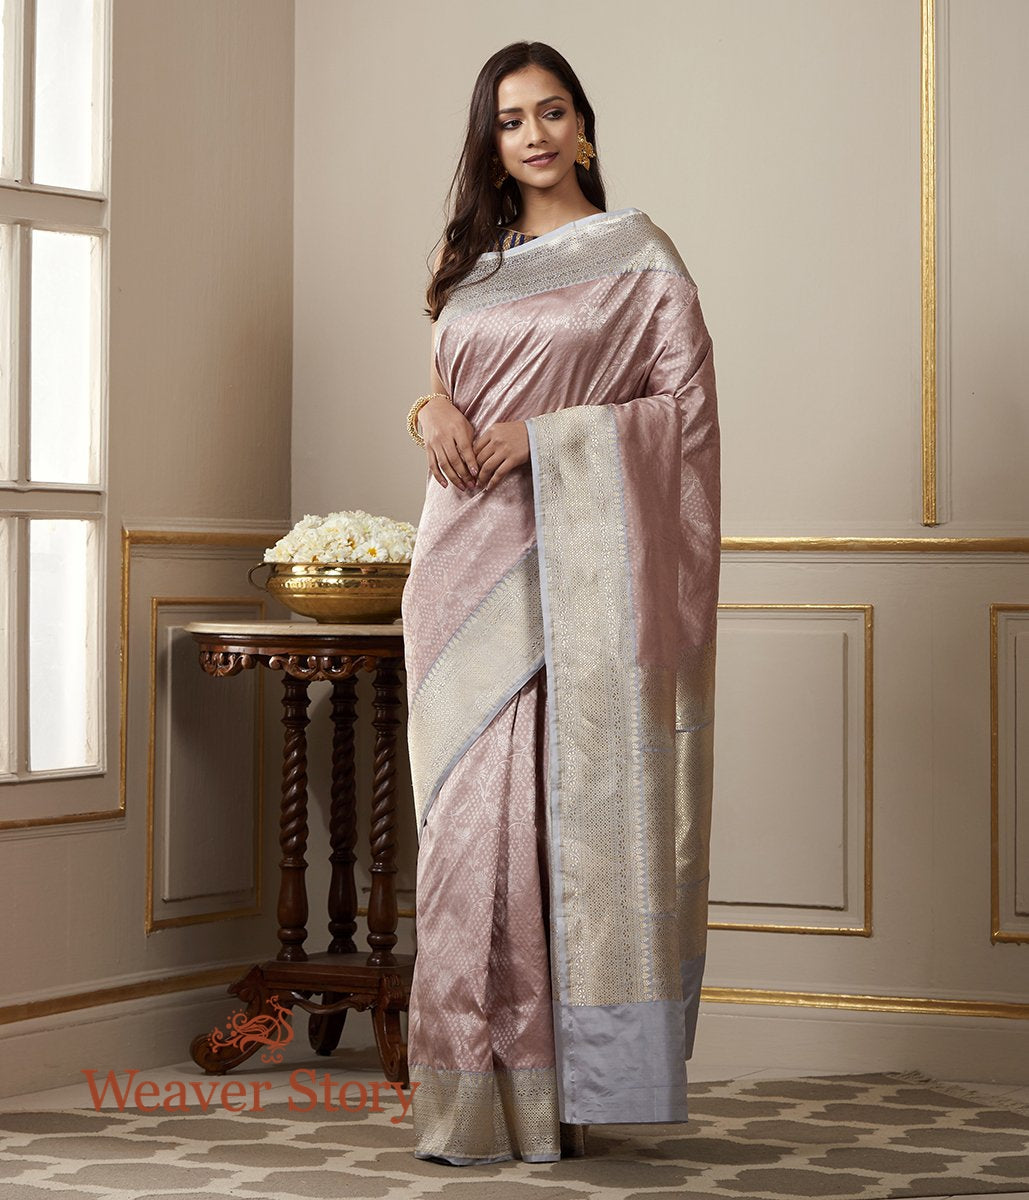 Handwoven Soft Pink Banarasi Tanchoi Saree with Kadhwa Border in Grey and Gold